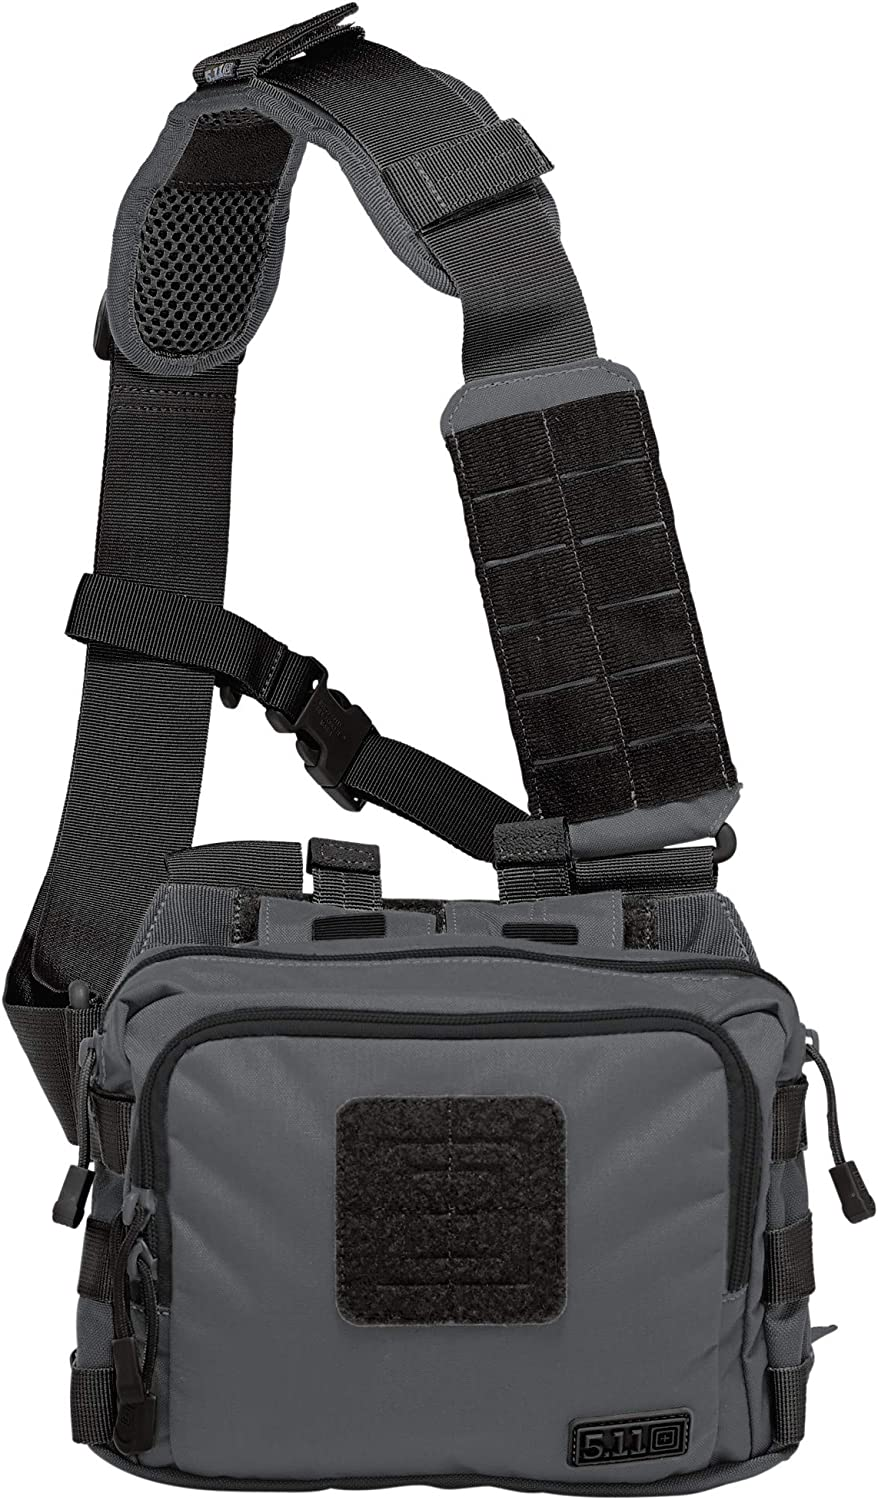 5.11 Rush Sales Delivery Mike Tactical Bag Style Max 49% OFF Messenger 561 Small